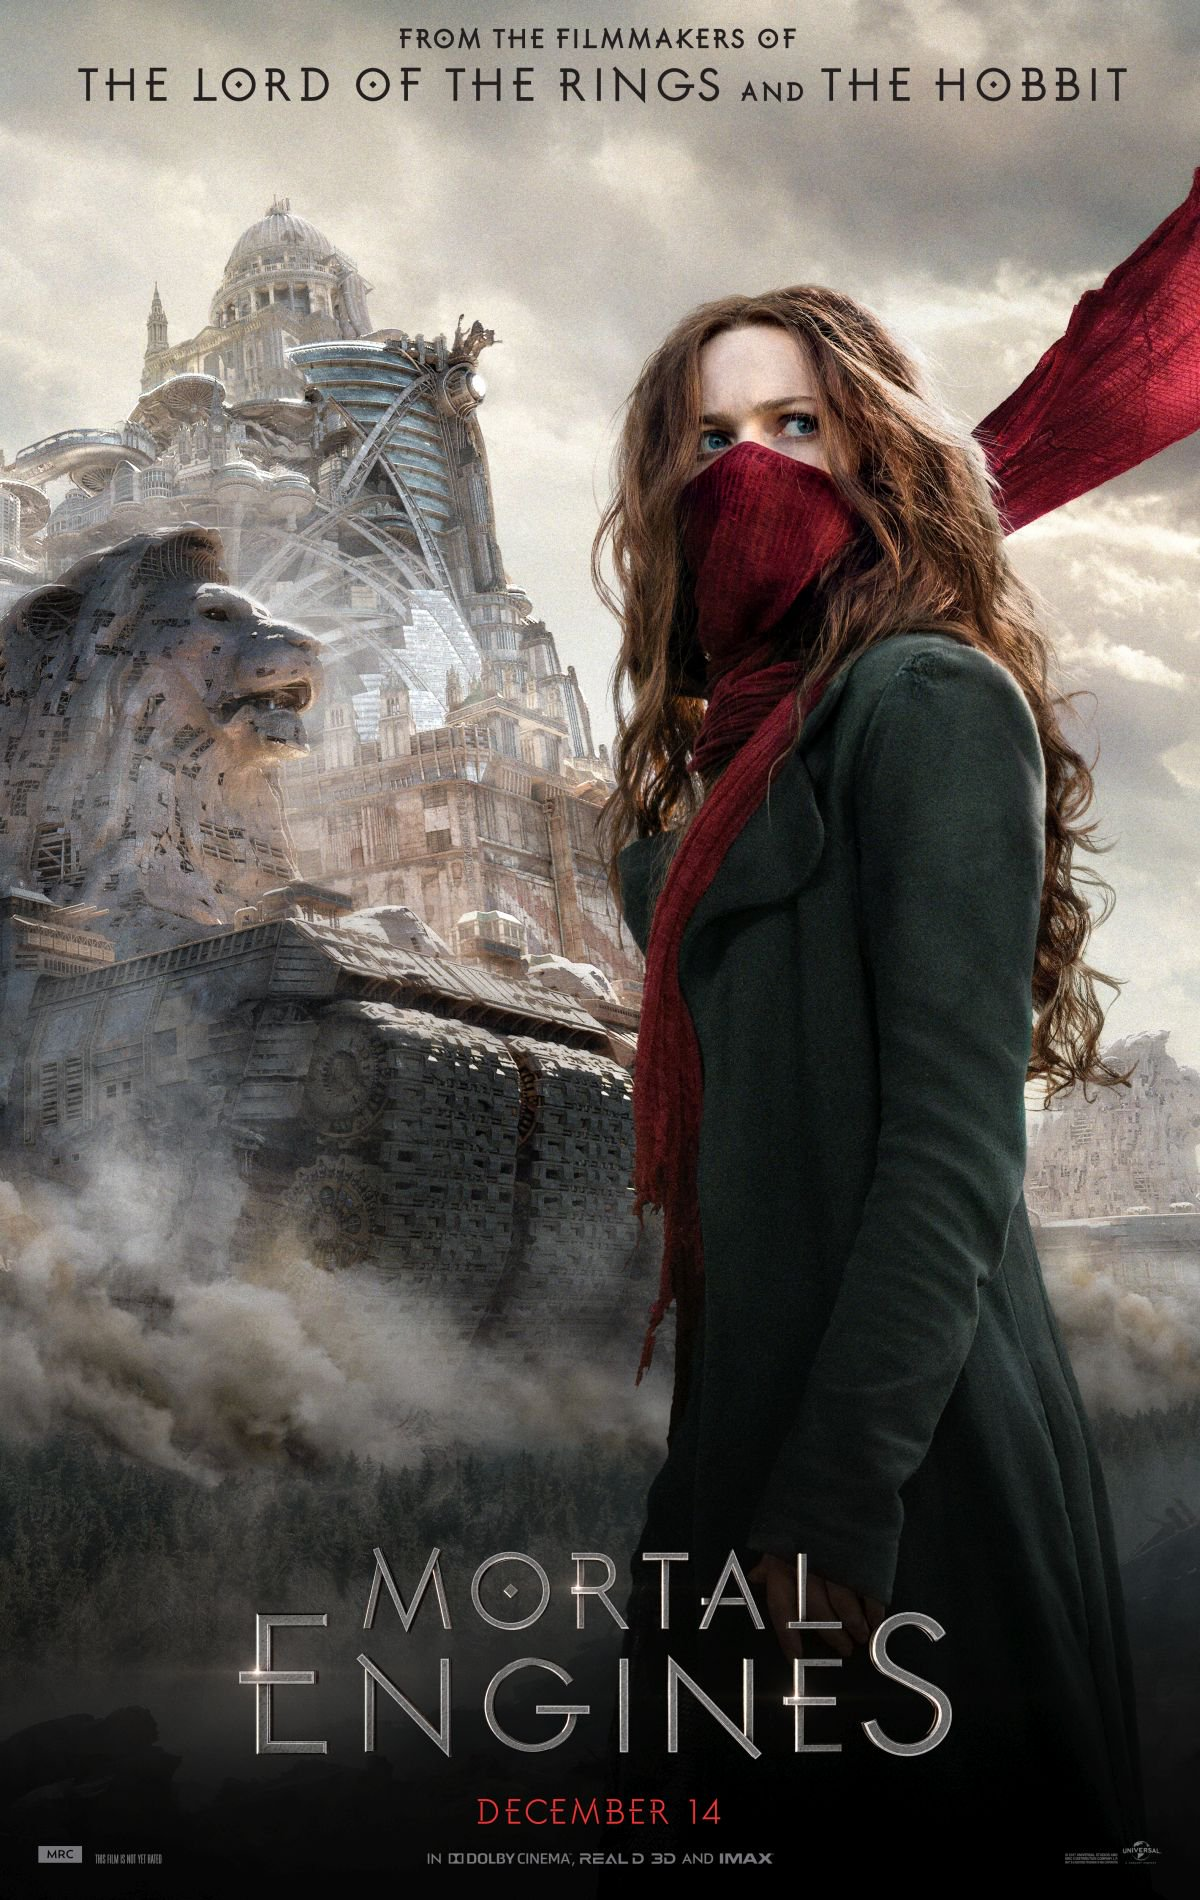 Mortal Engines: It's the beginning of a new saga